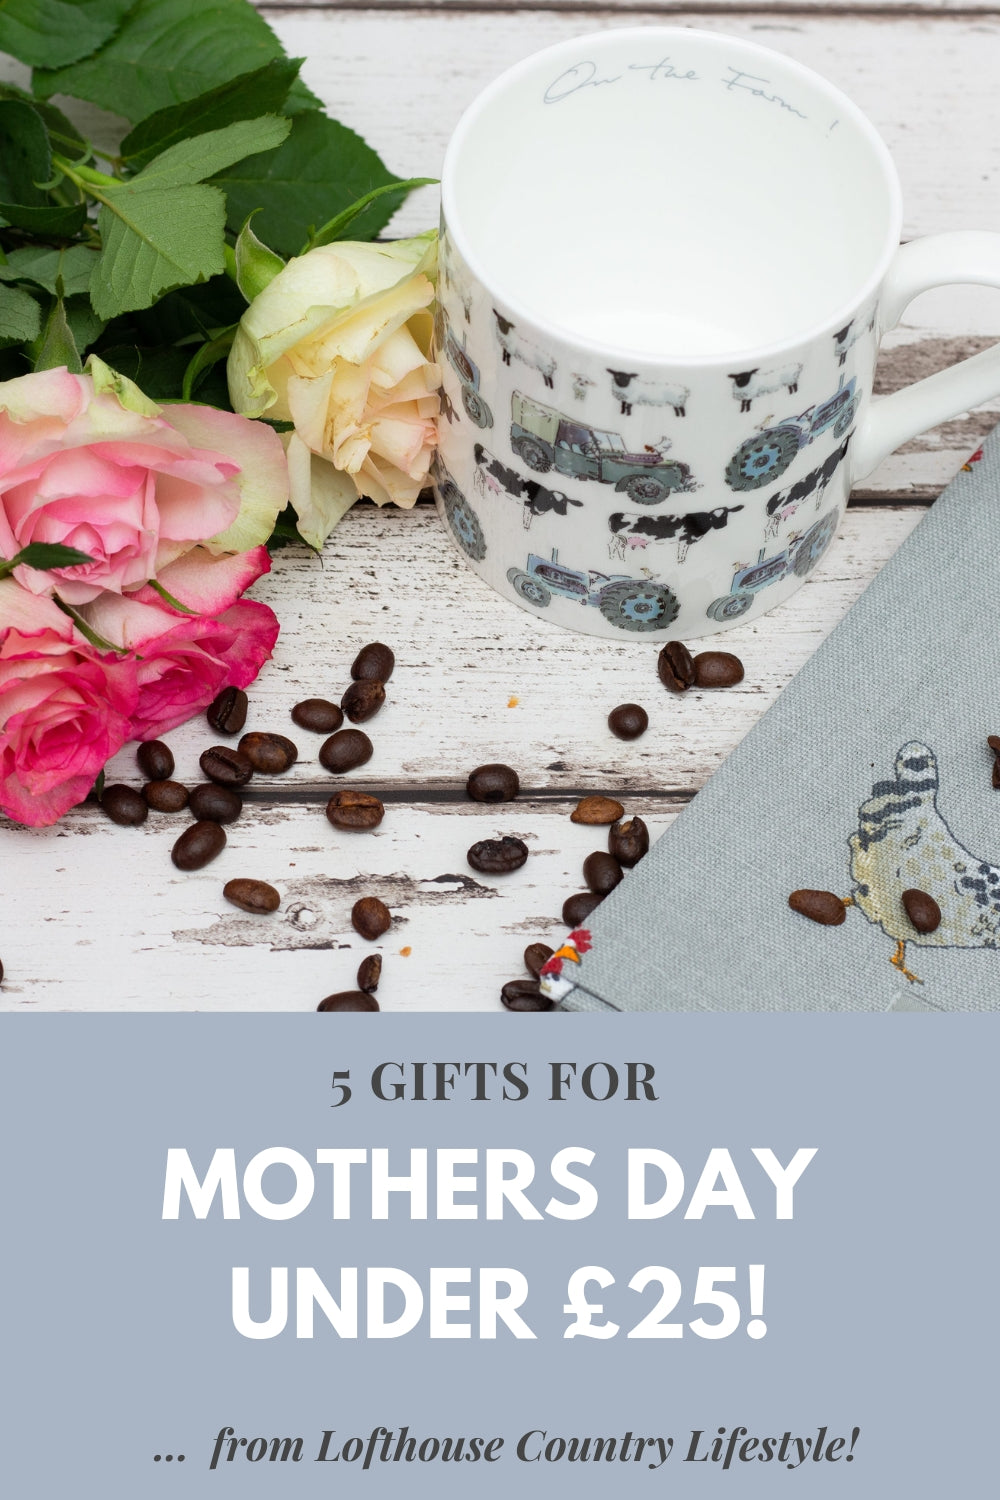 5 gifts for mothers day in march for less than £25